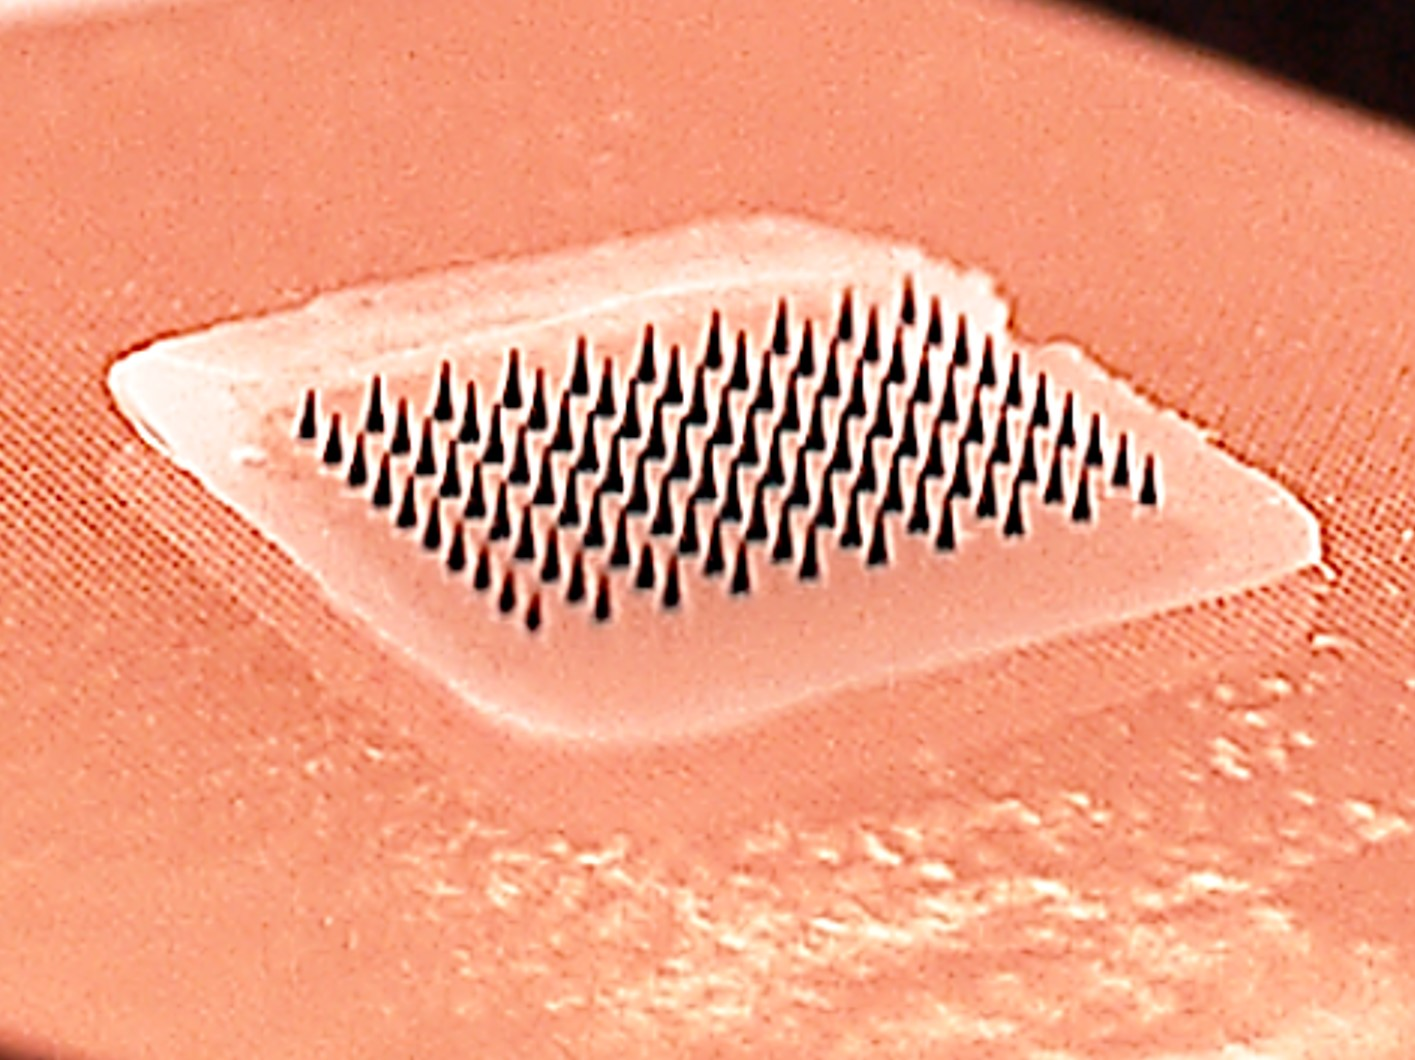 Microneedle patches for flu vaccination prove successful in first human clinical trial